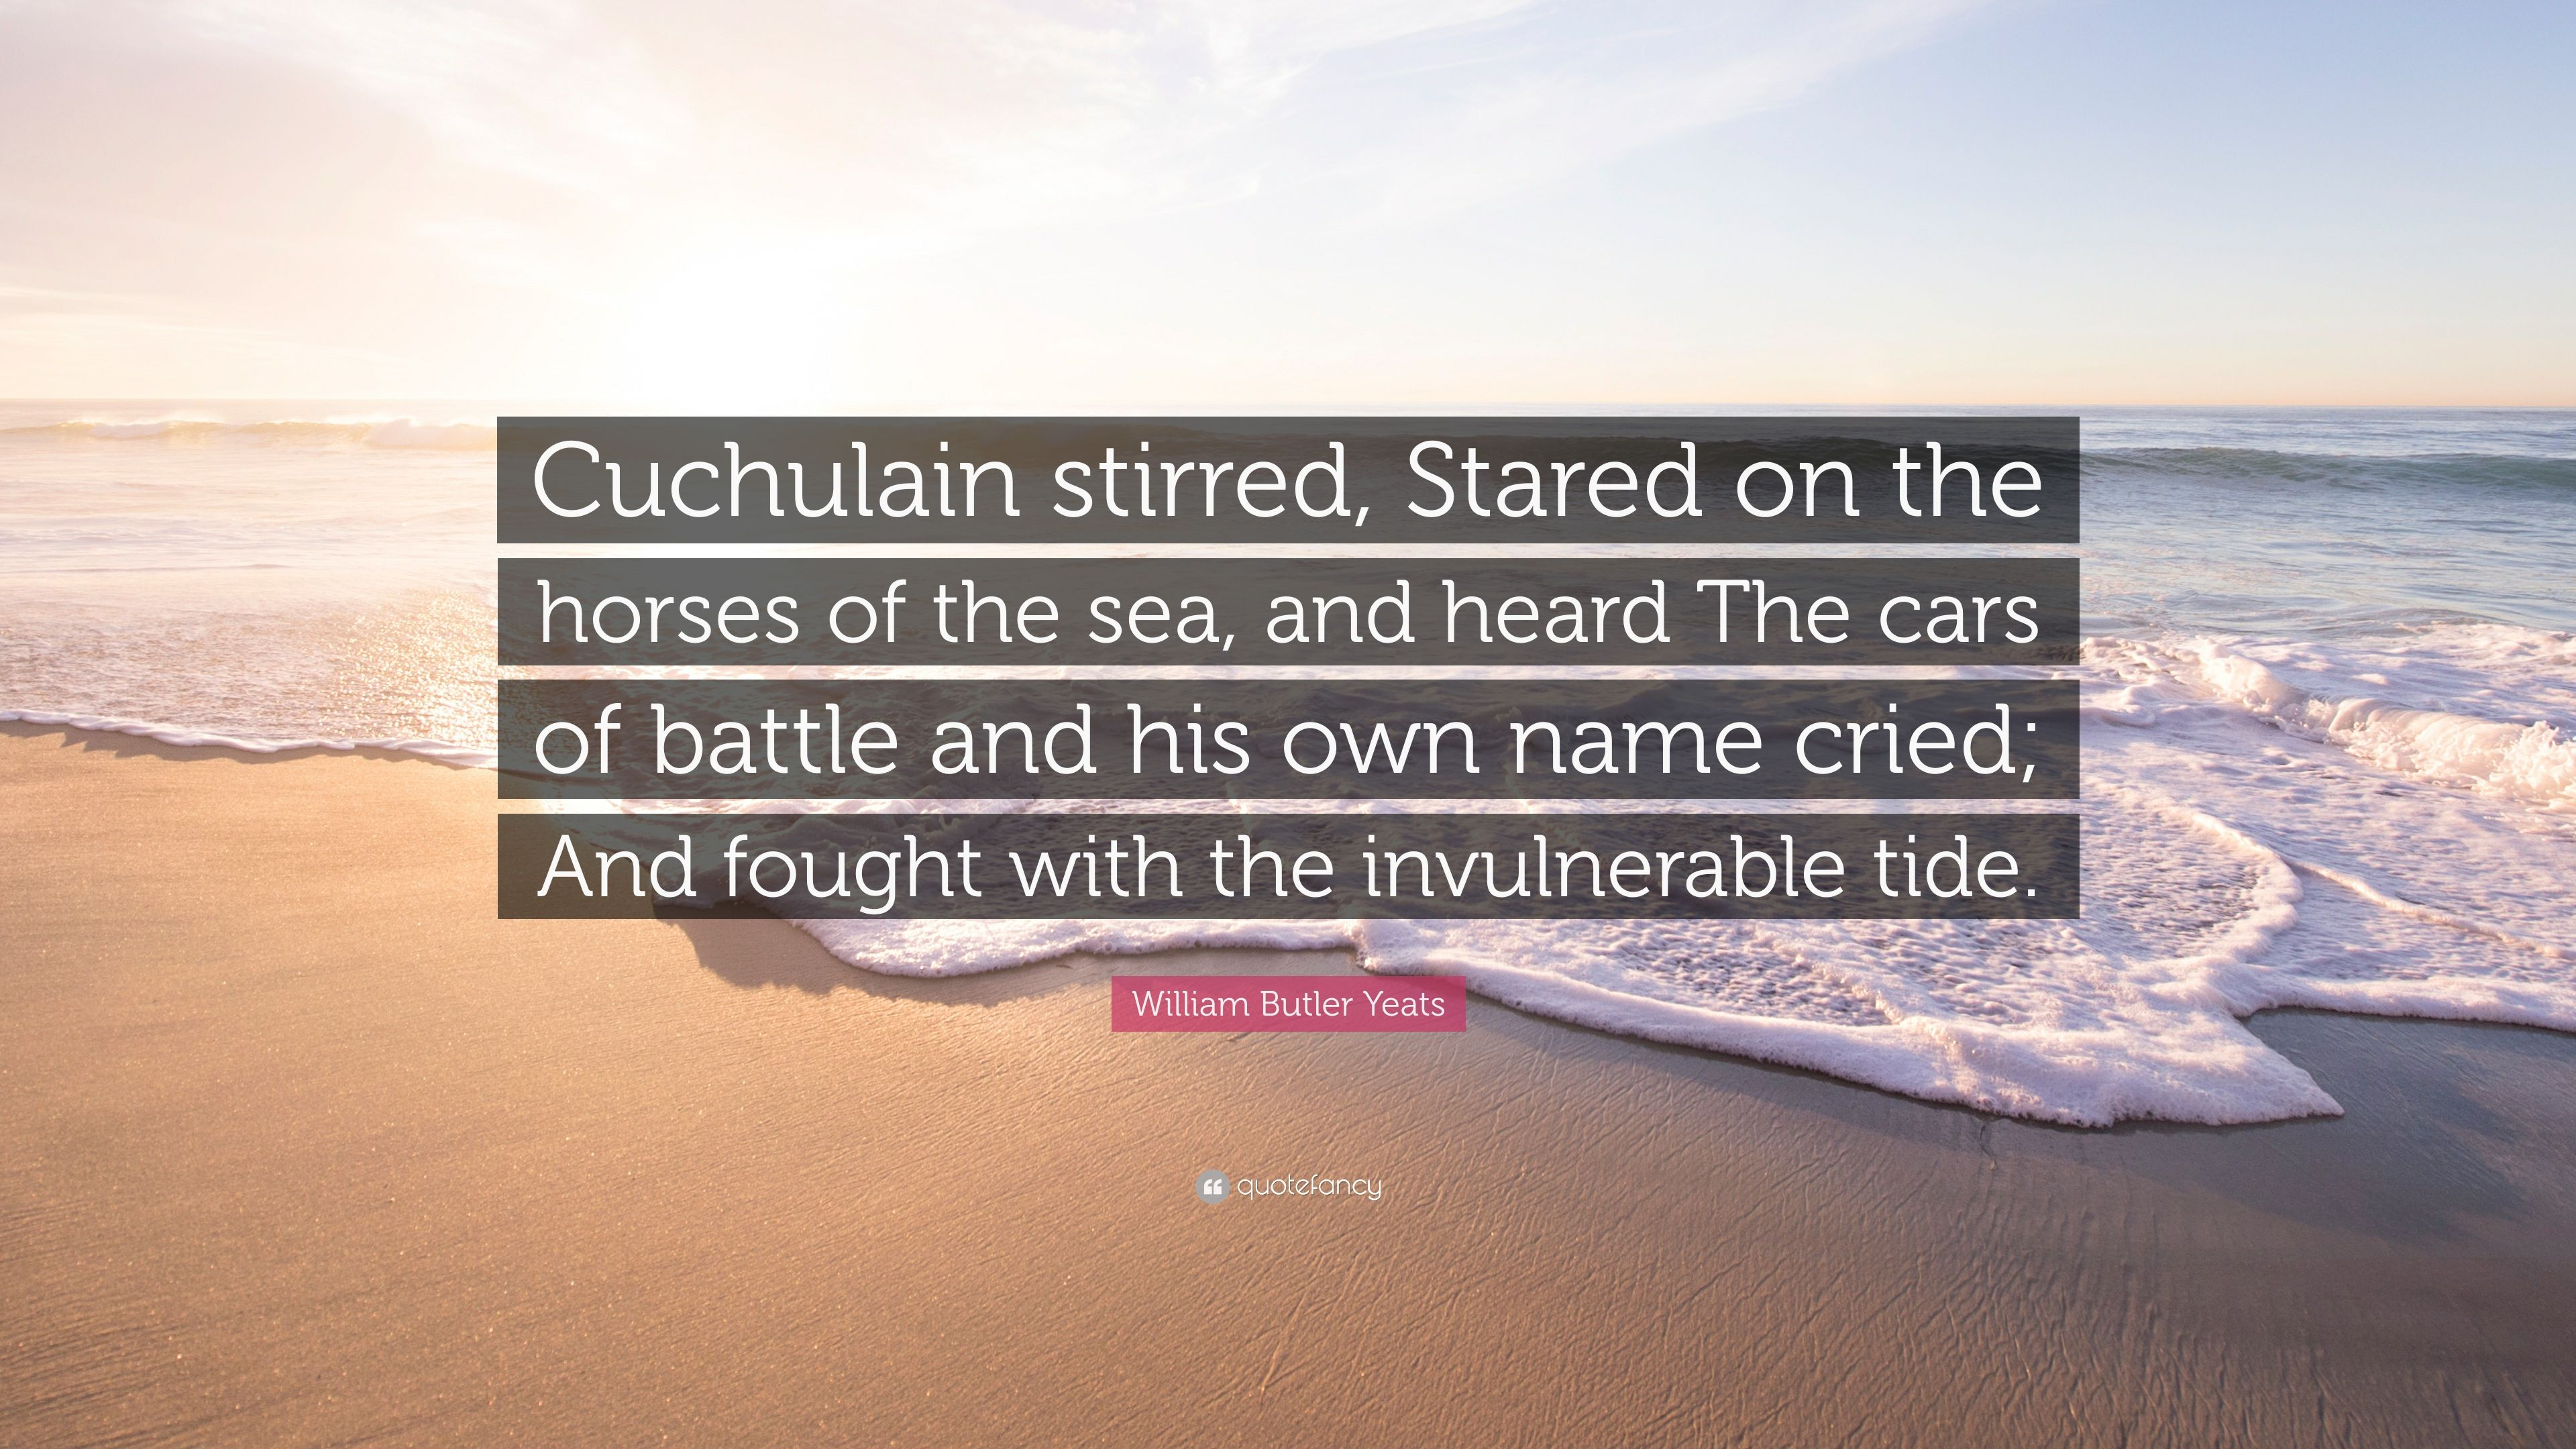 2935317-William-Butler-Yeats-Quote-Cuchulain-stirred-Stared-on-the-horses